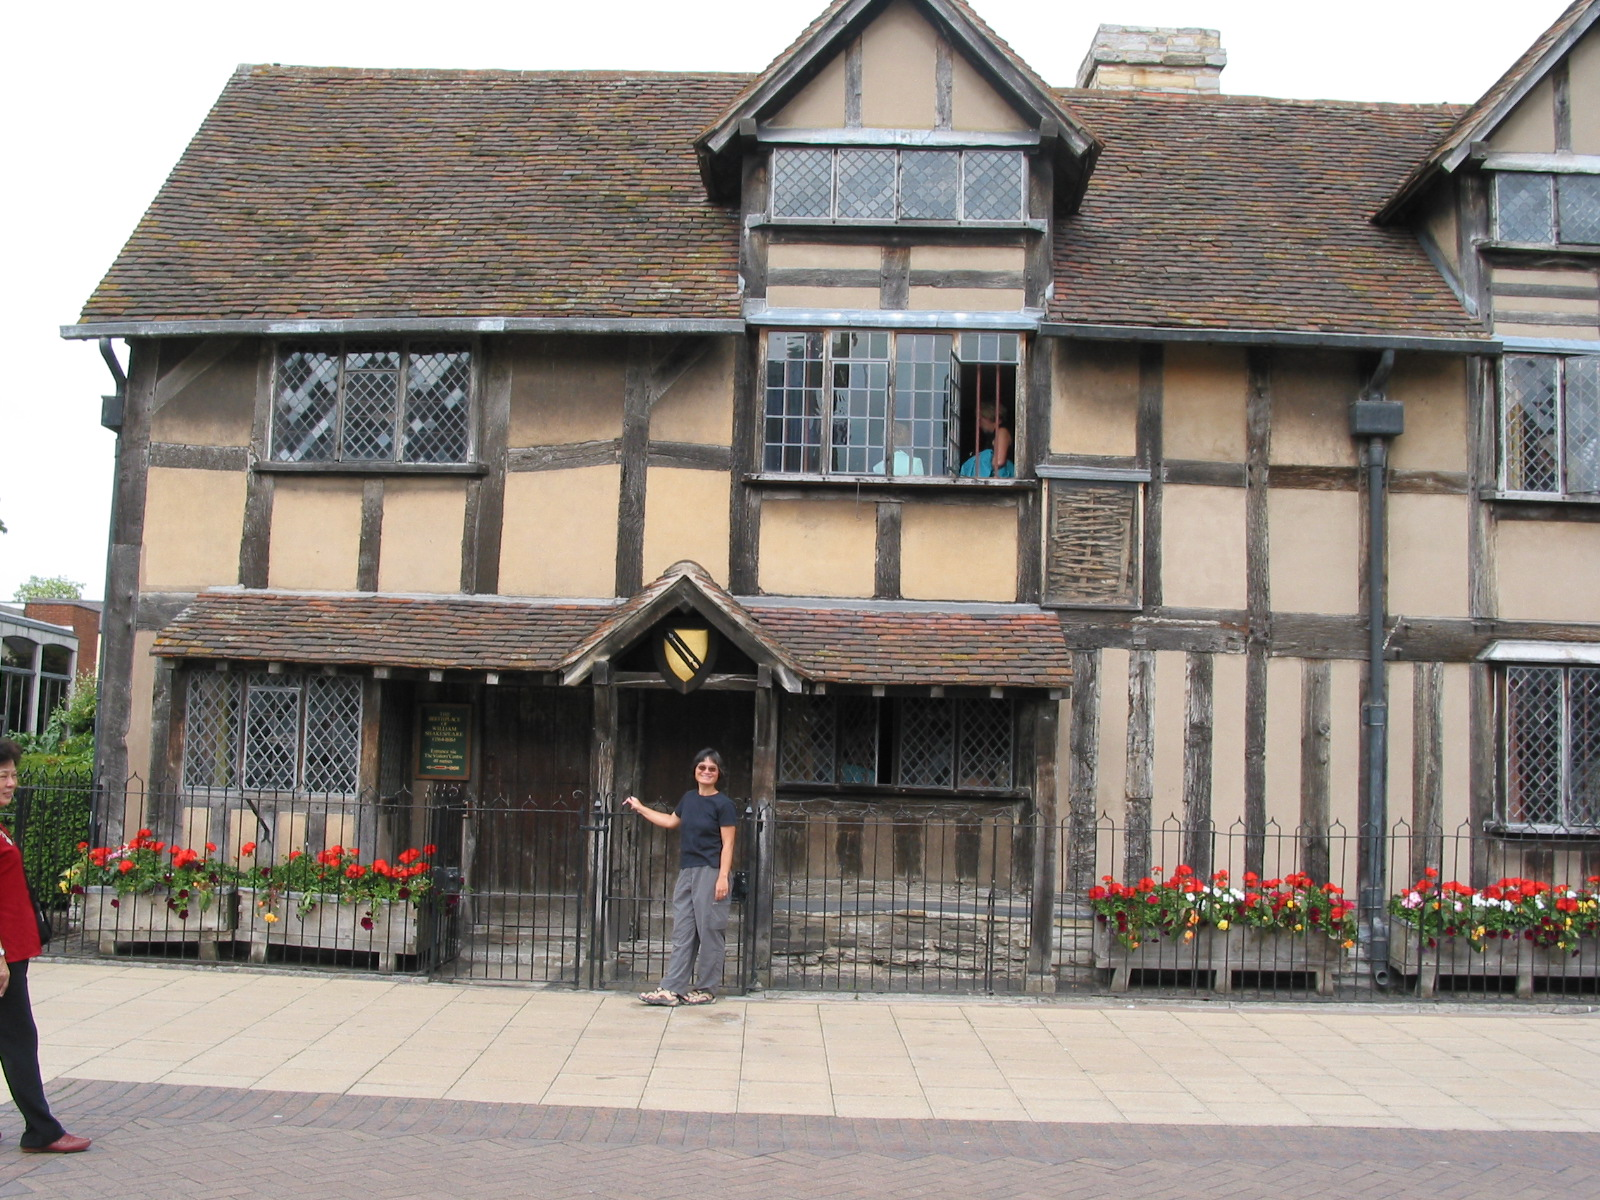 2005 England Shakespeare's birthplace